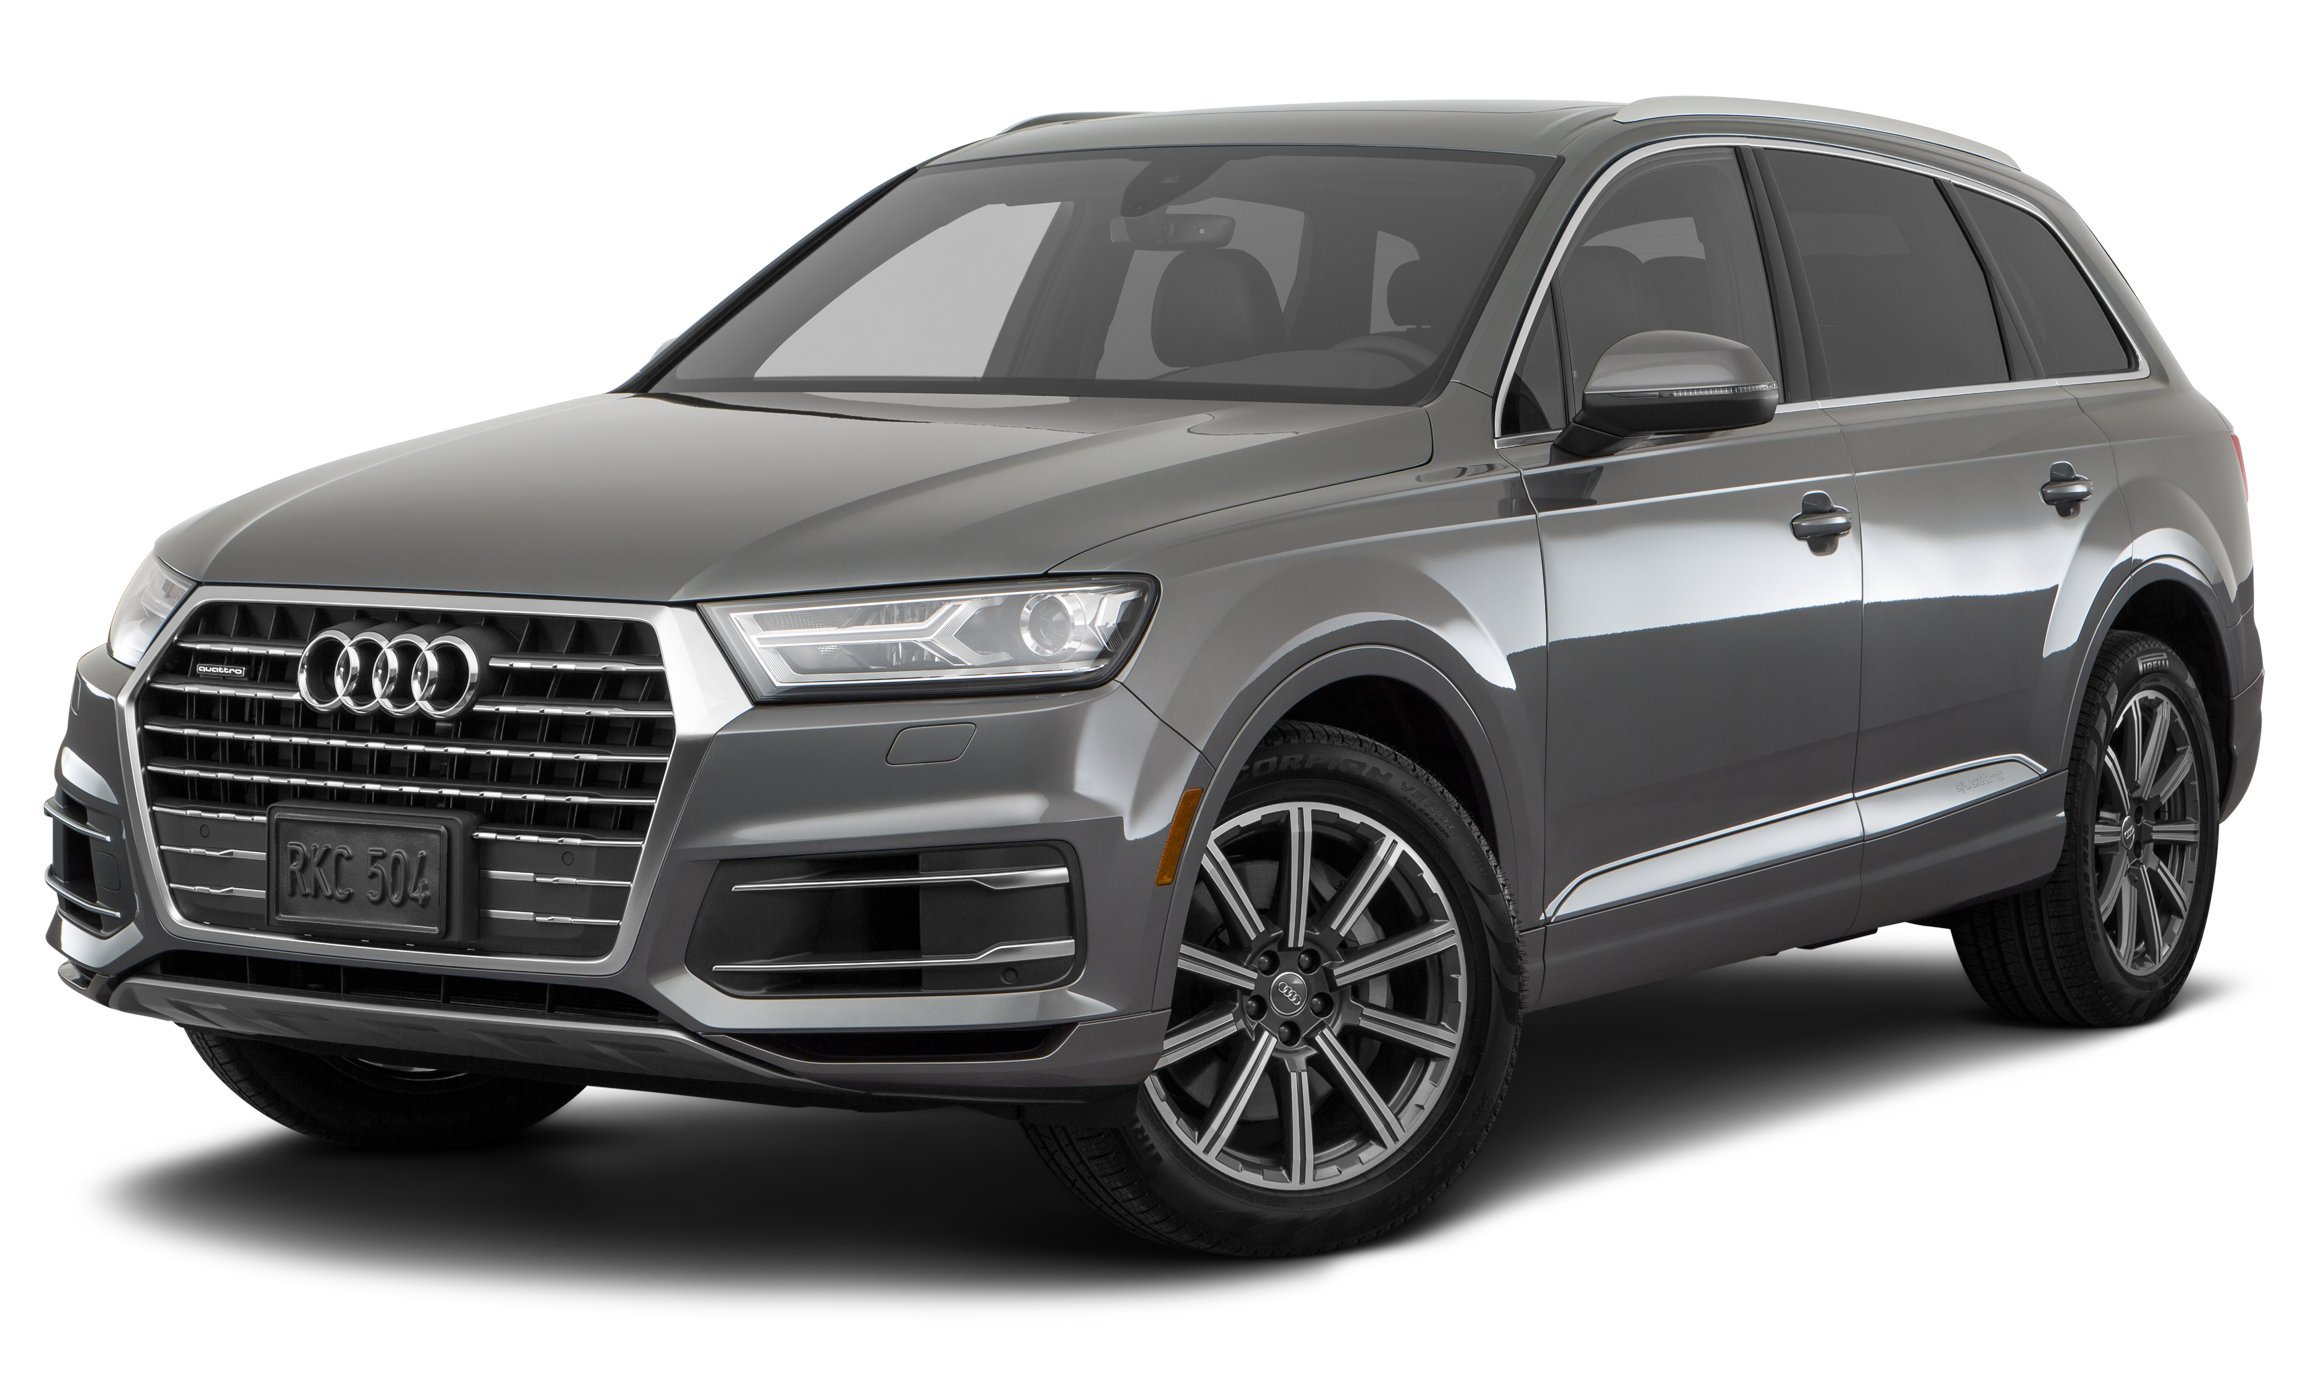 2018 audi q7 reviews images and specs vehicles. Black Bedroom Furniture Sets. Home Design Ideas